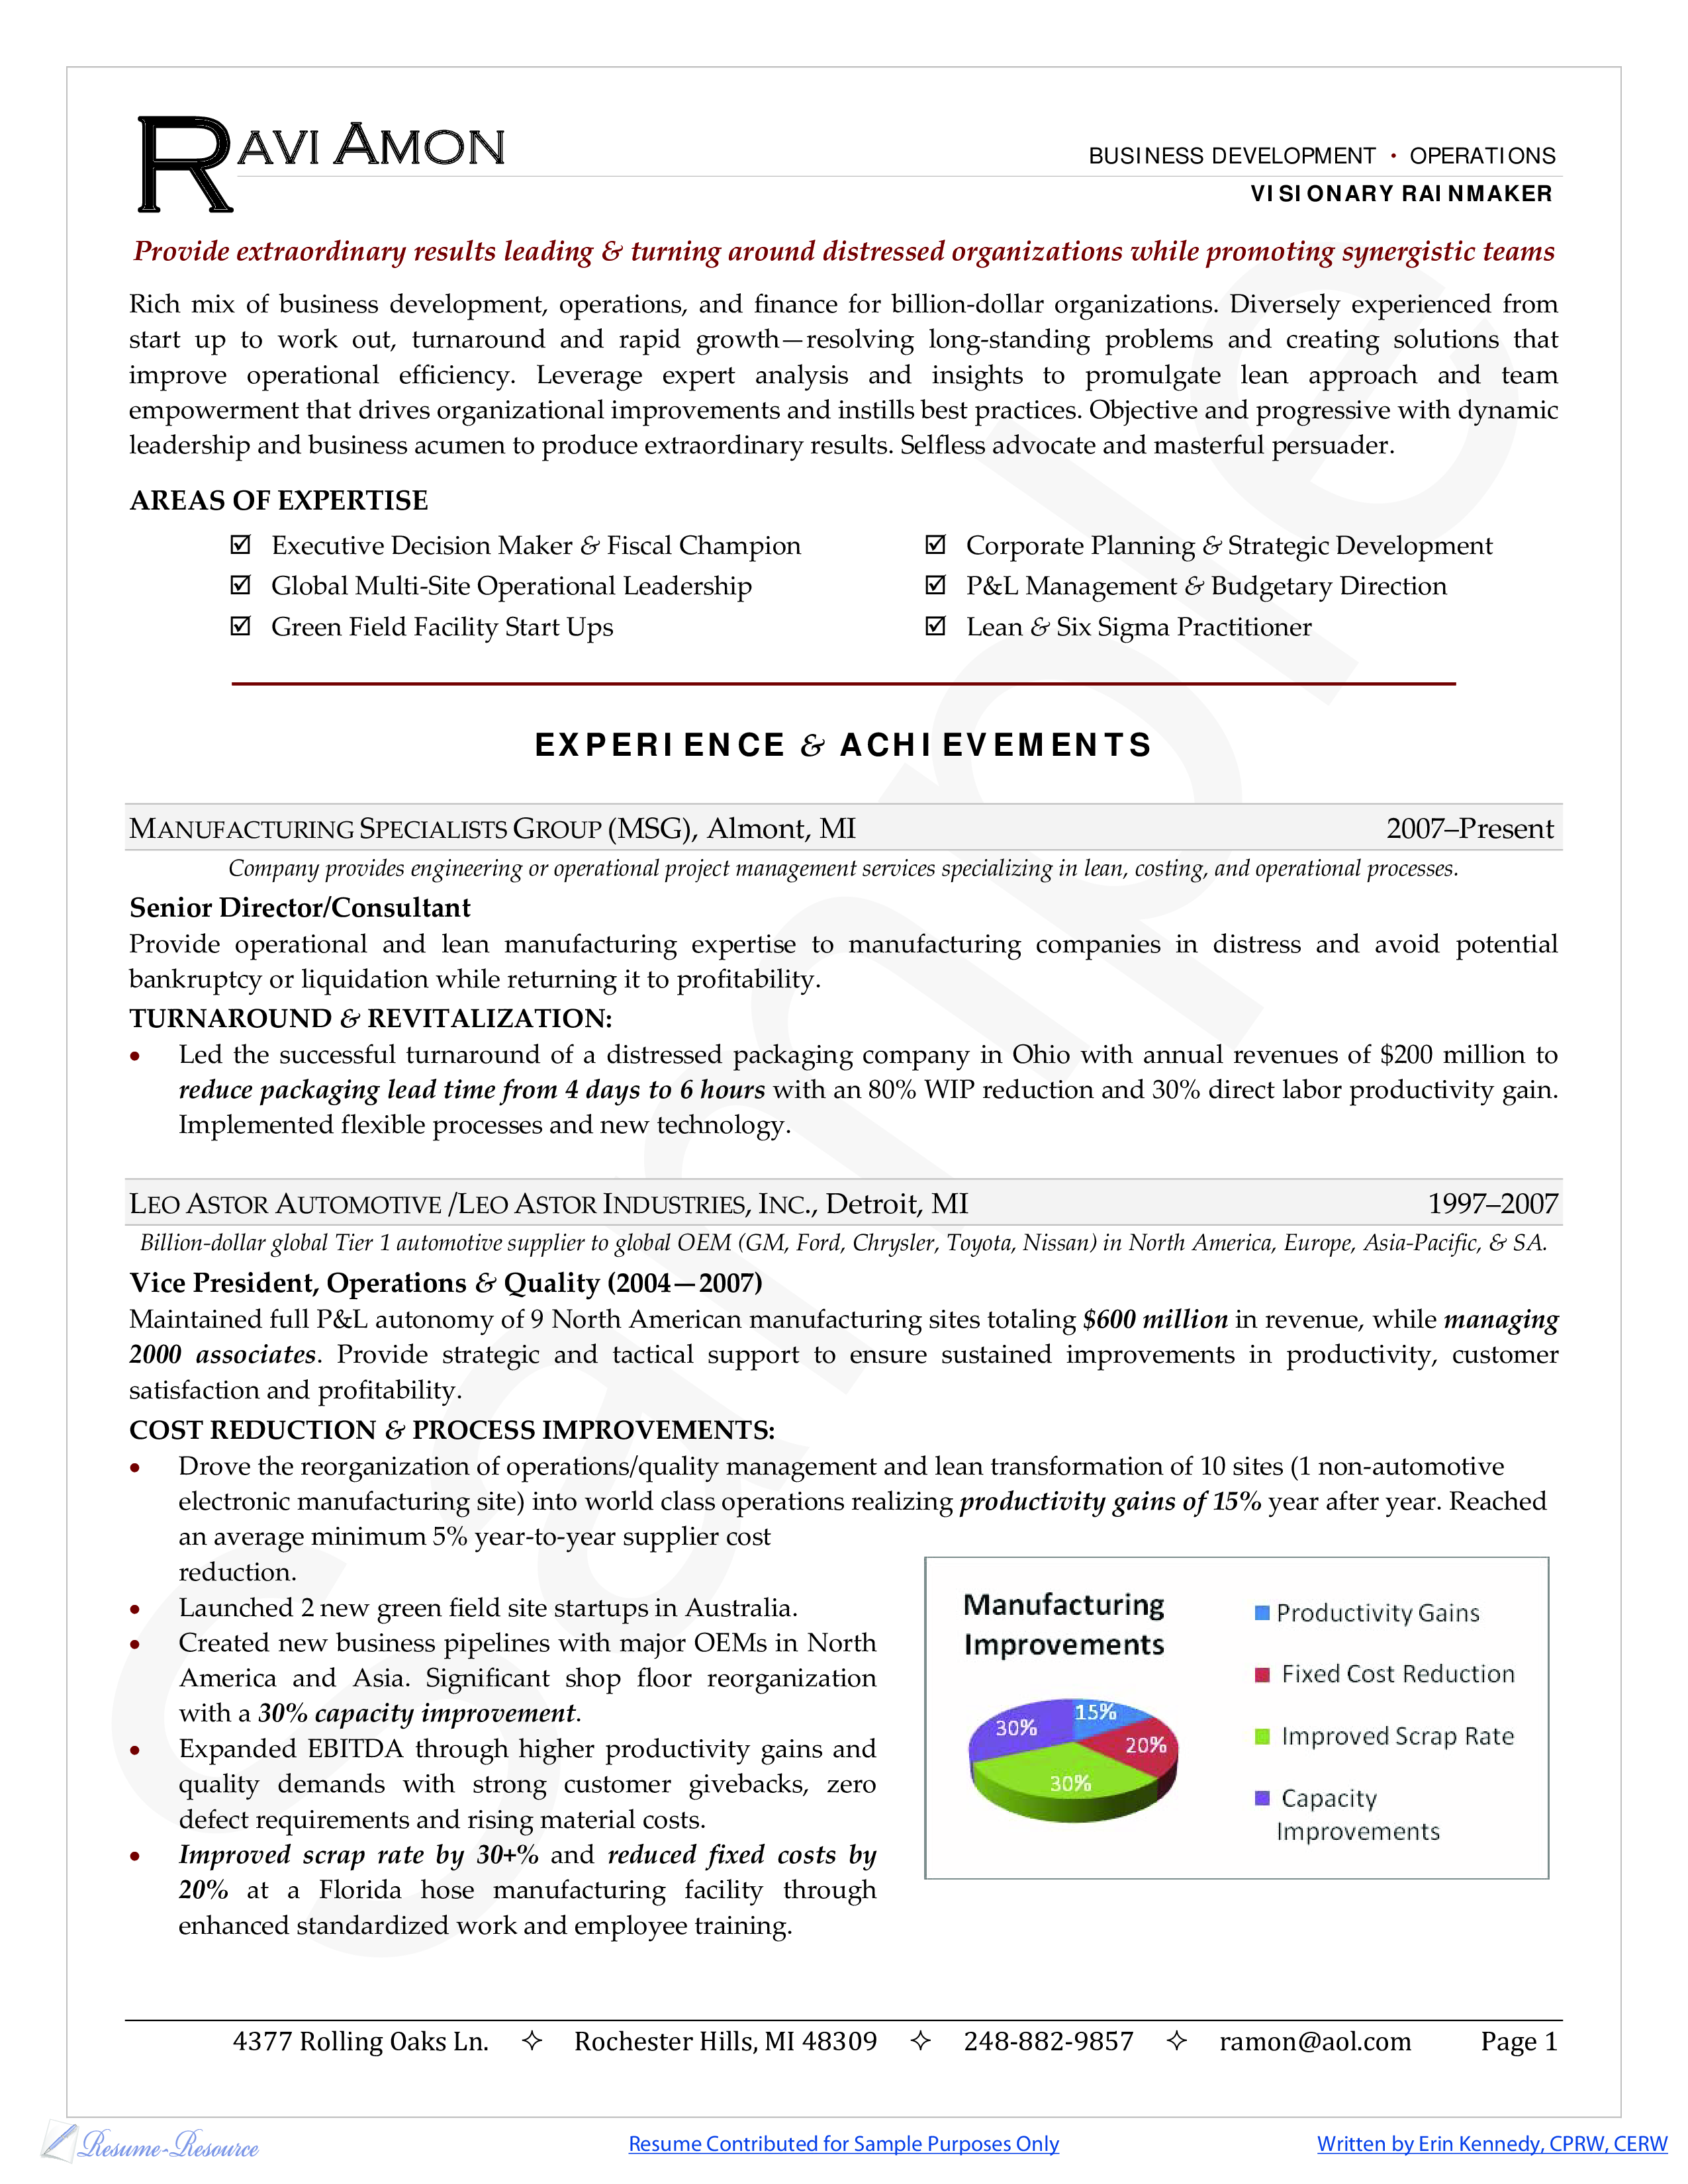 free business development manager resume templates at